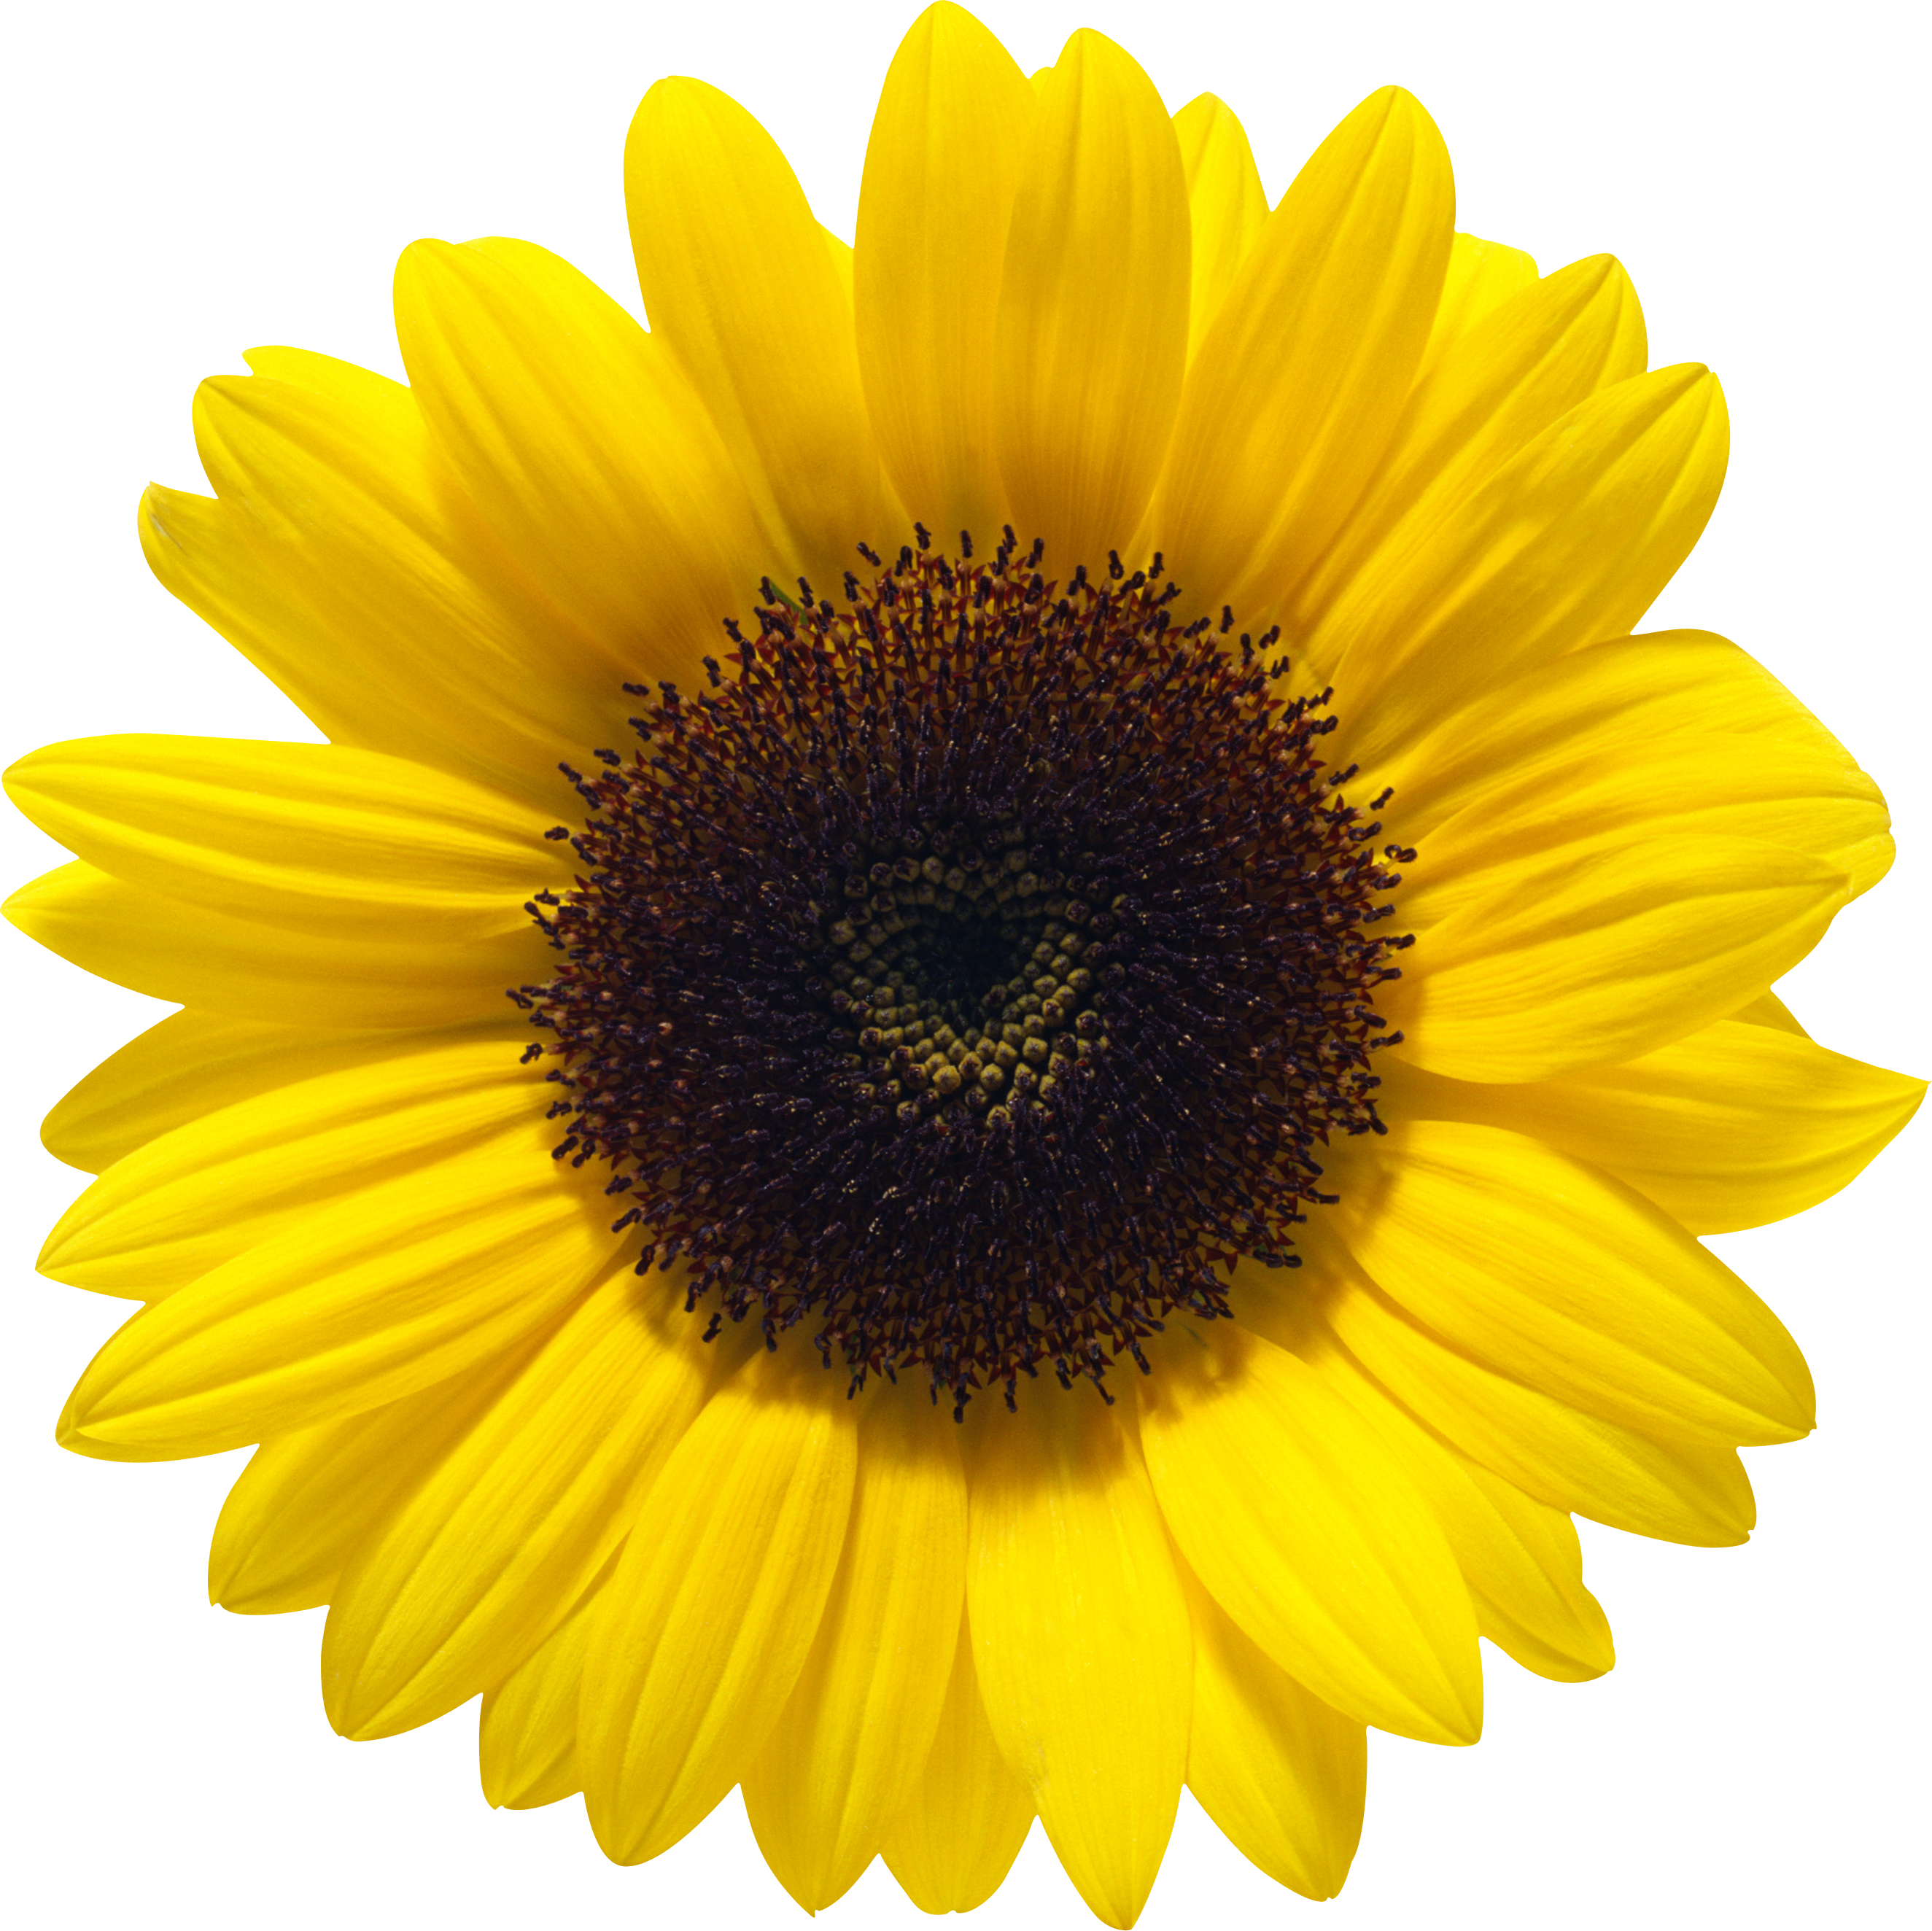 Sunflower PNG images free download.